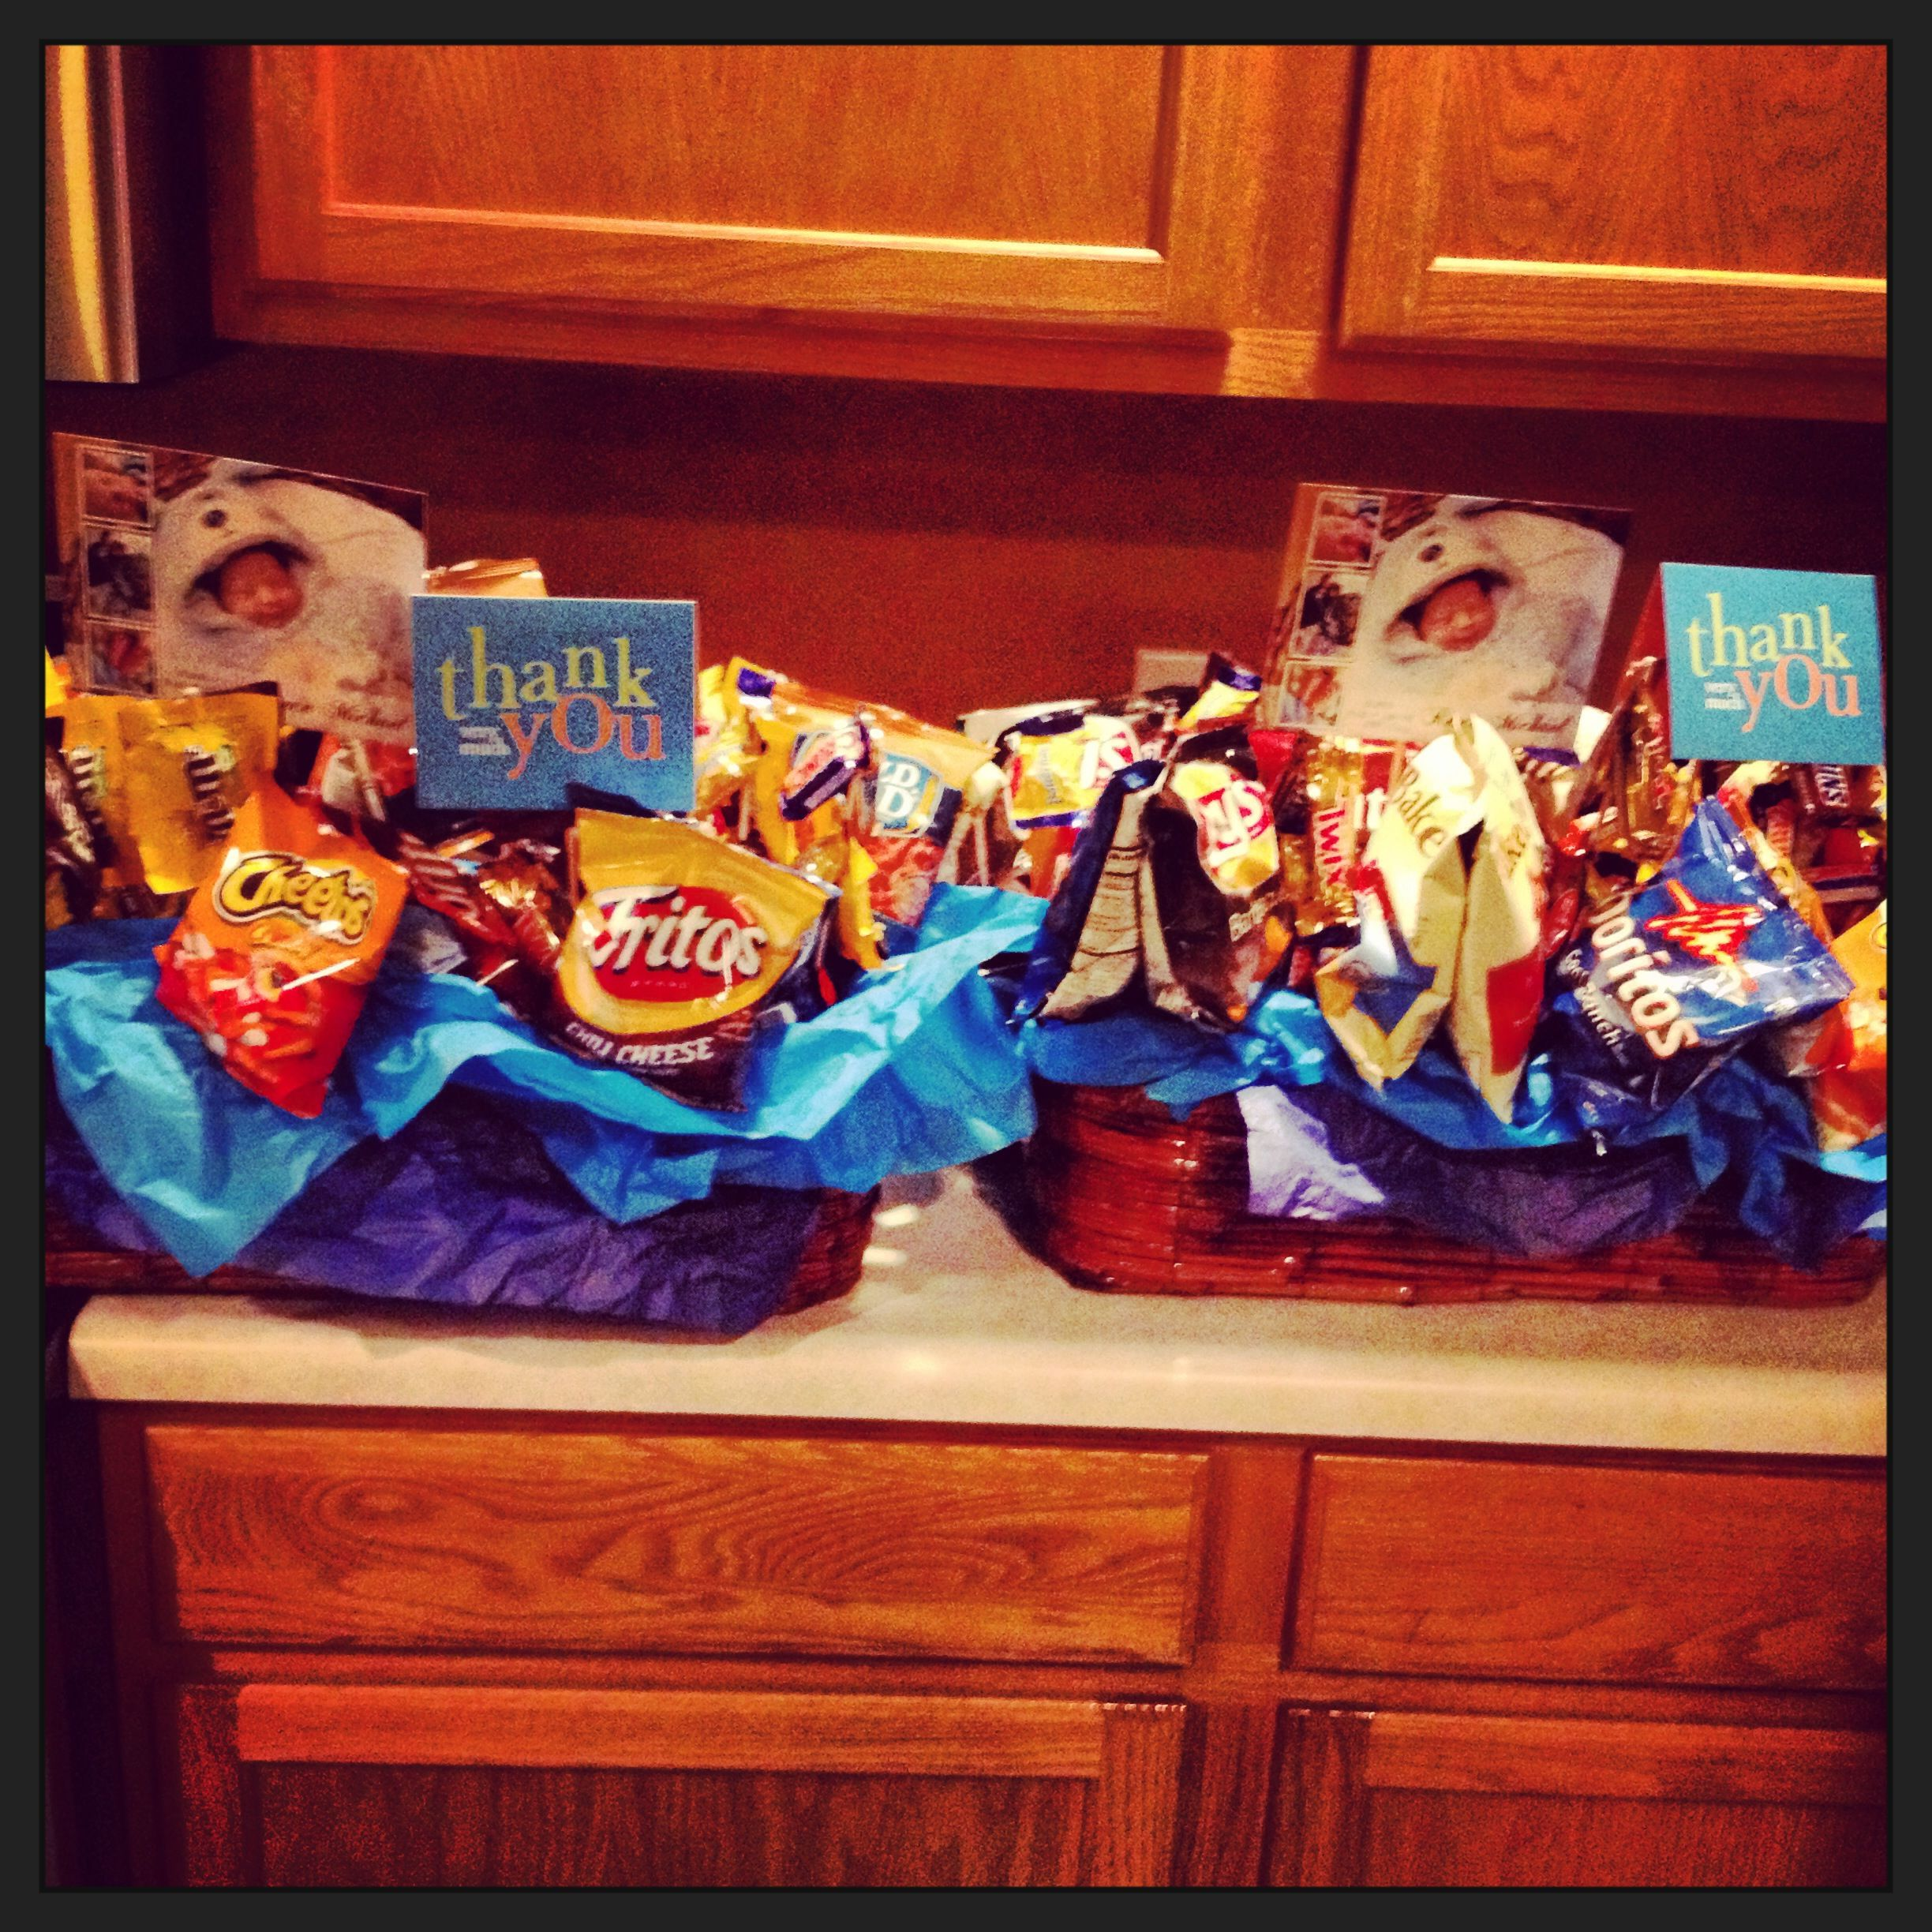 Thank you gift baskets for labor and delivery nurses and the Obgyn ...